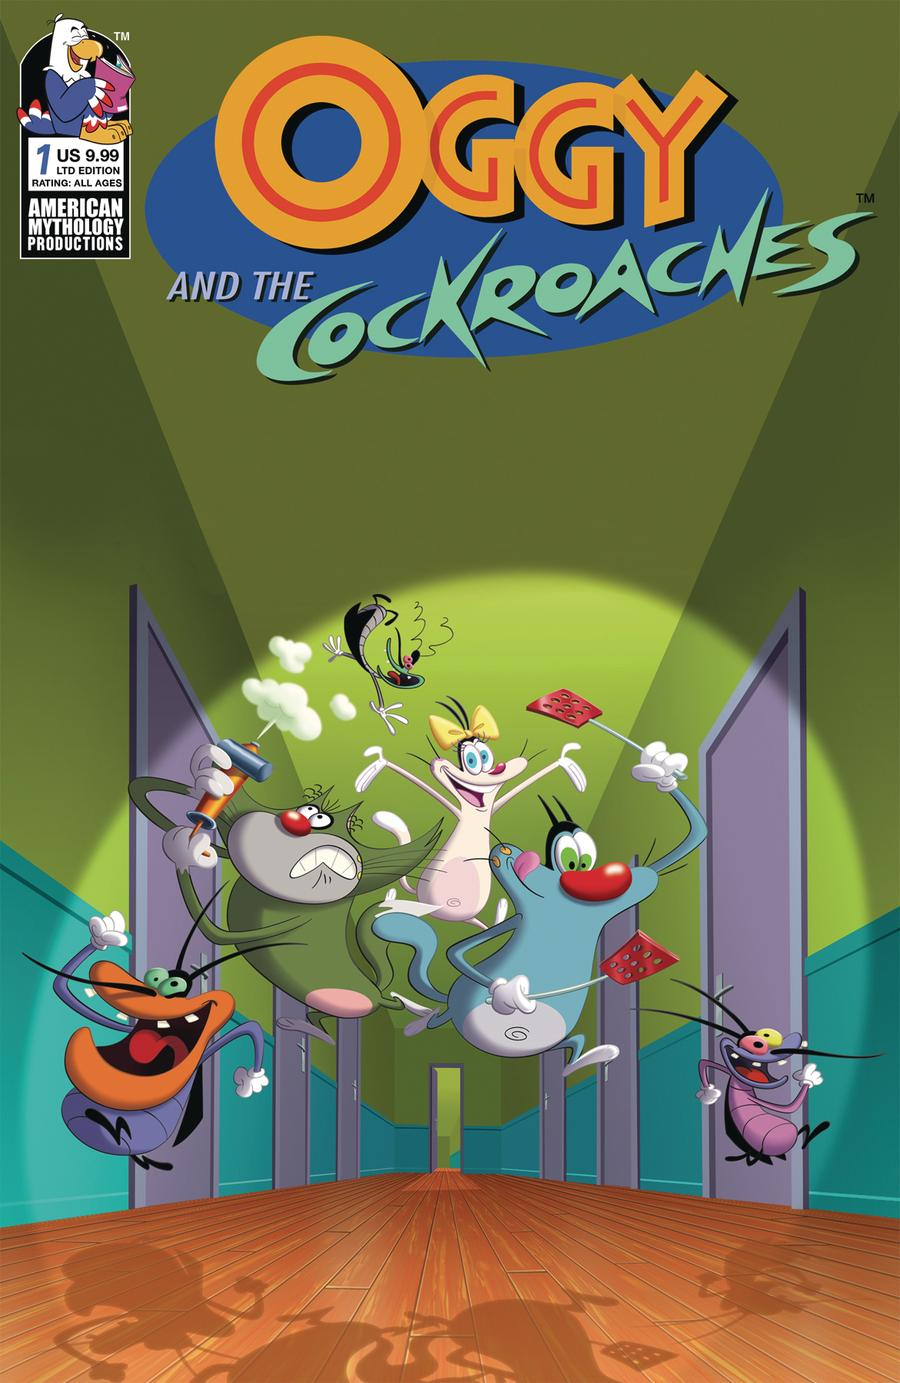 Oggy And The Cockroaches #1 Cover C Limited Edition Animation Cel Variant Cover